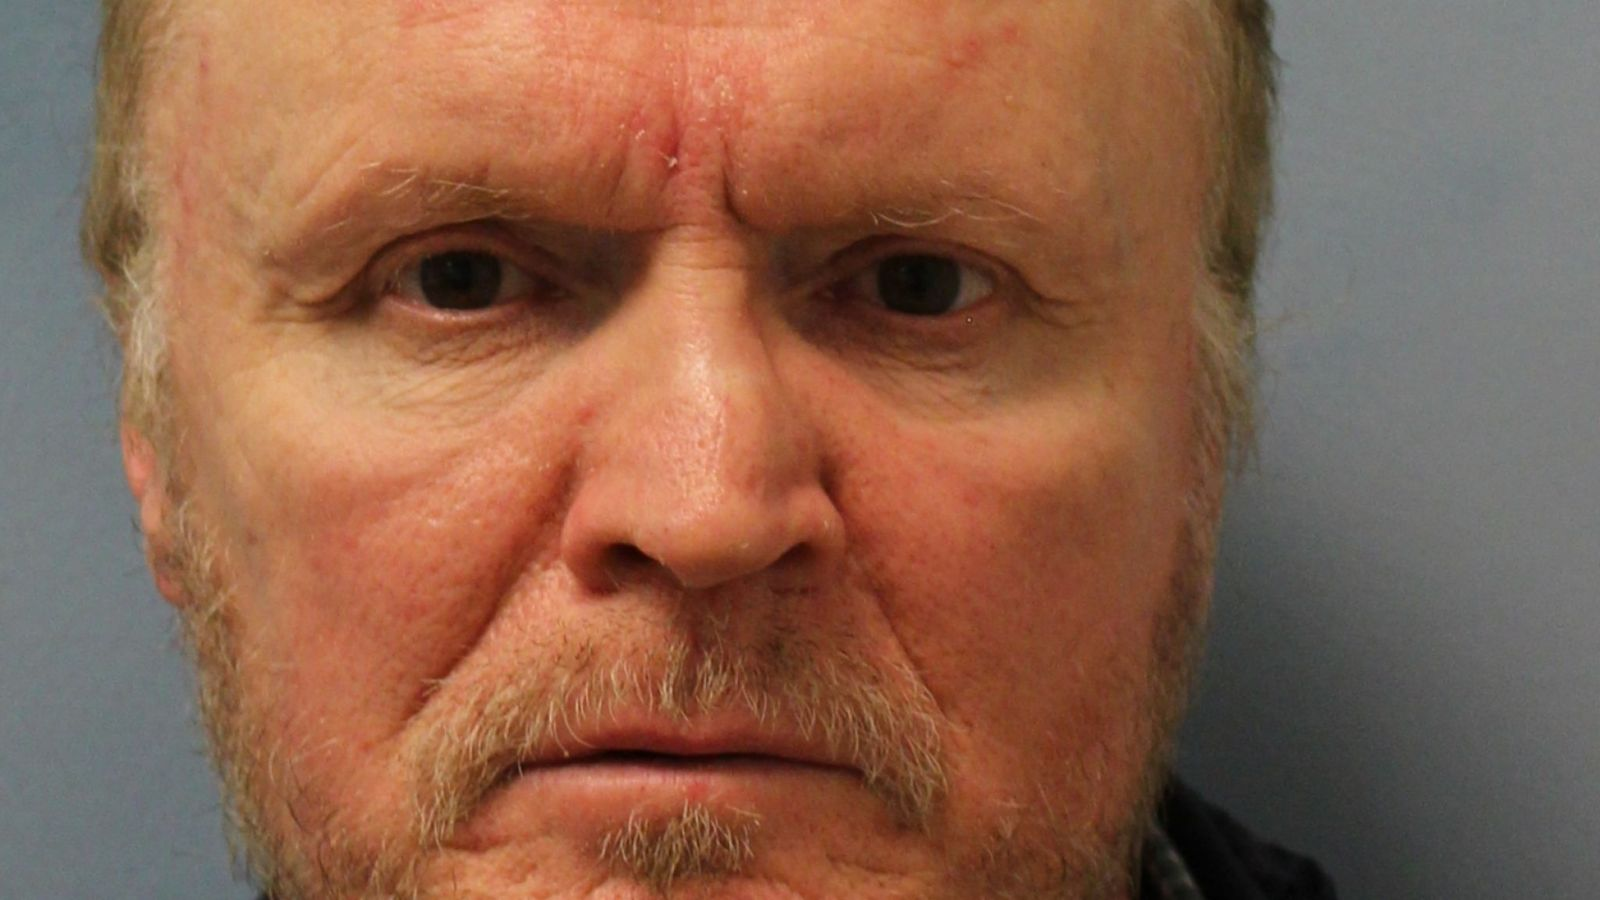 Robert Vidler has been jailed for sending death threats to MPs over Brexit